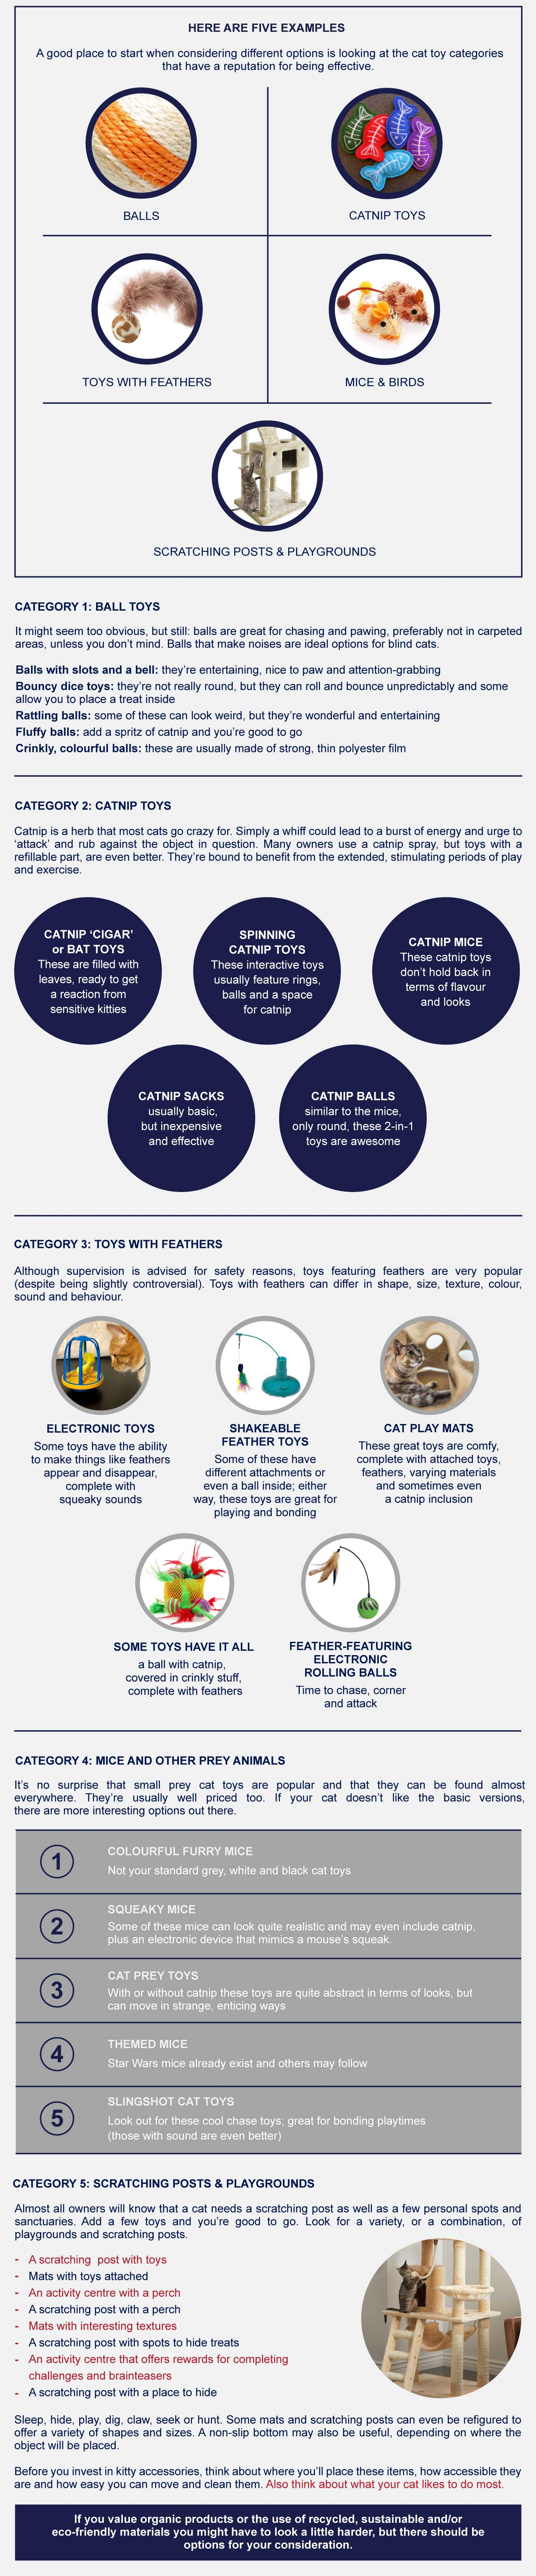 top interactive toys for cats-infographic